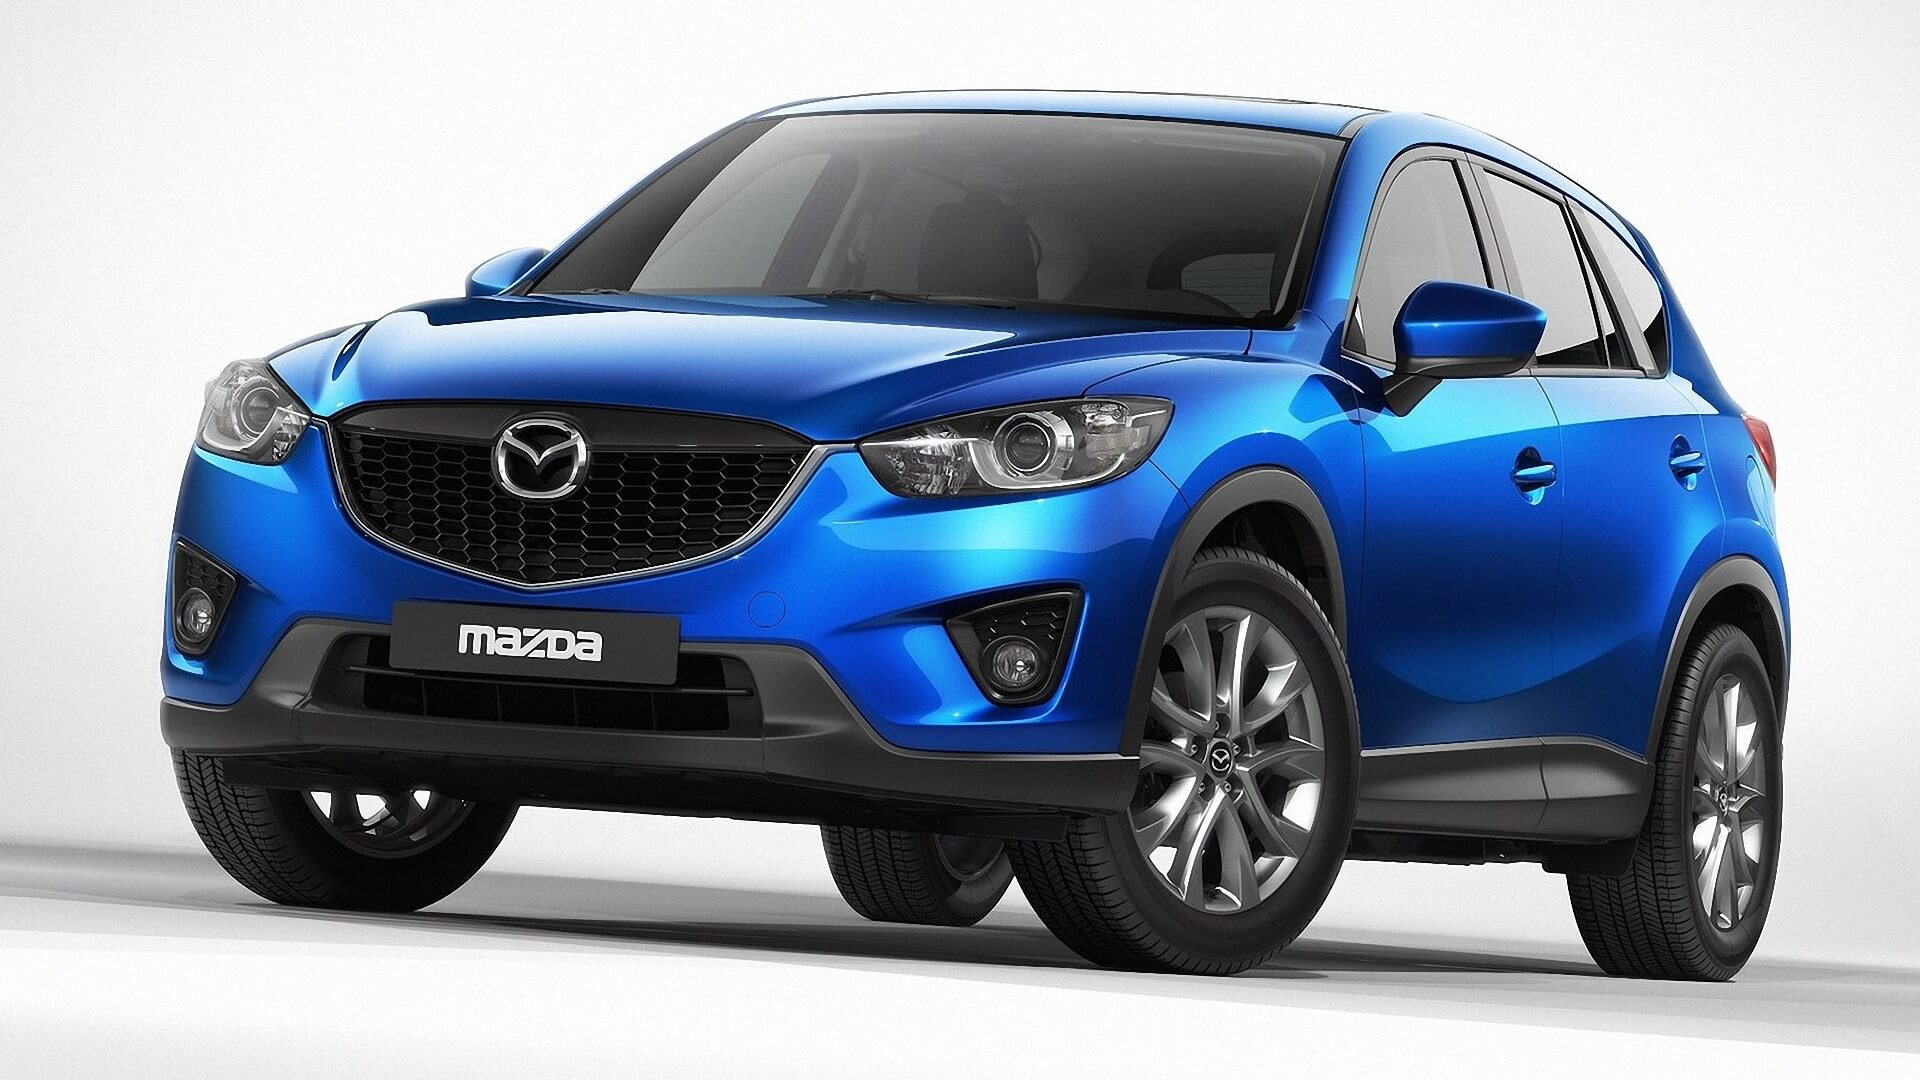 Genuine Mazda spare parts in Melbourne